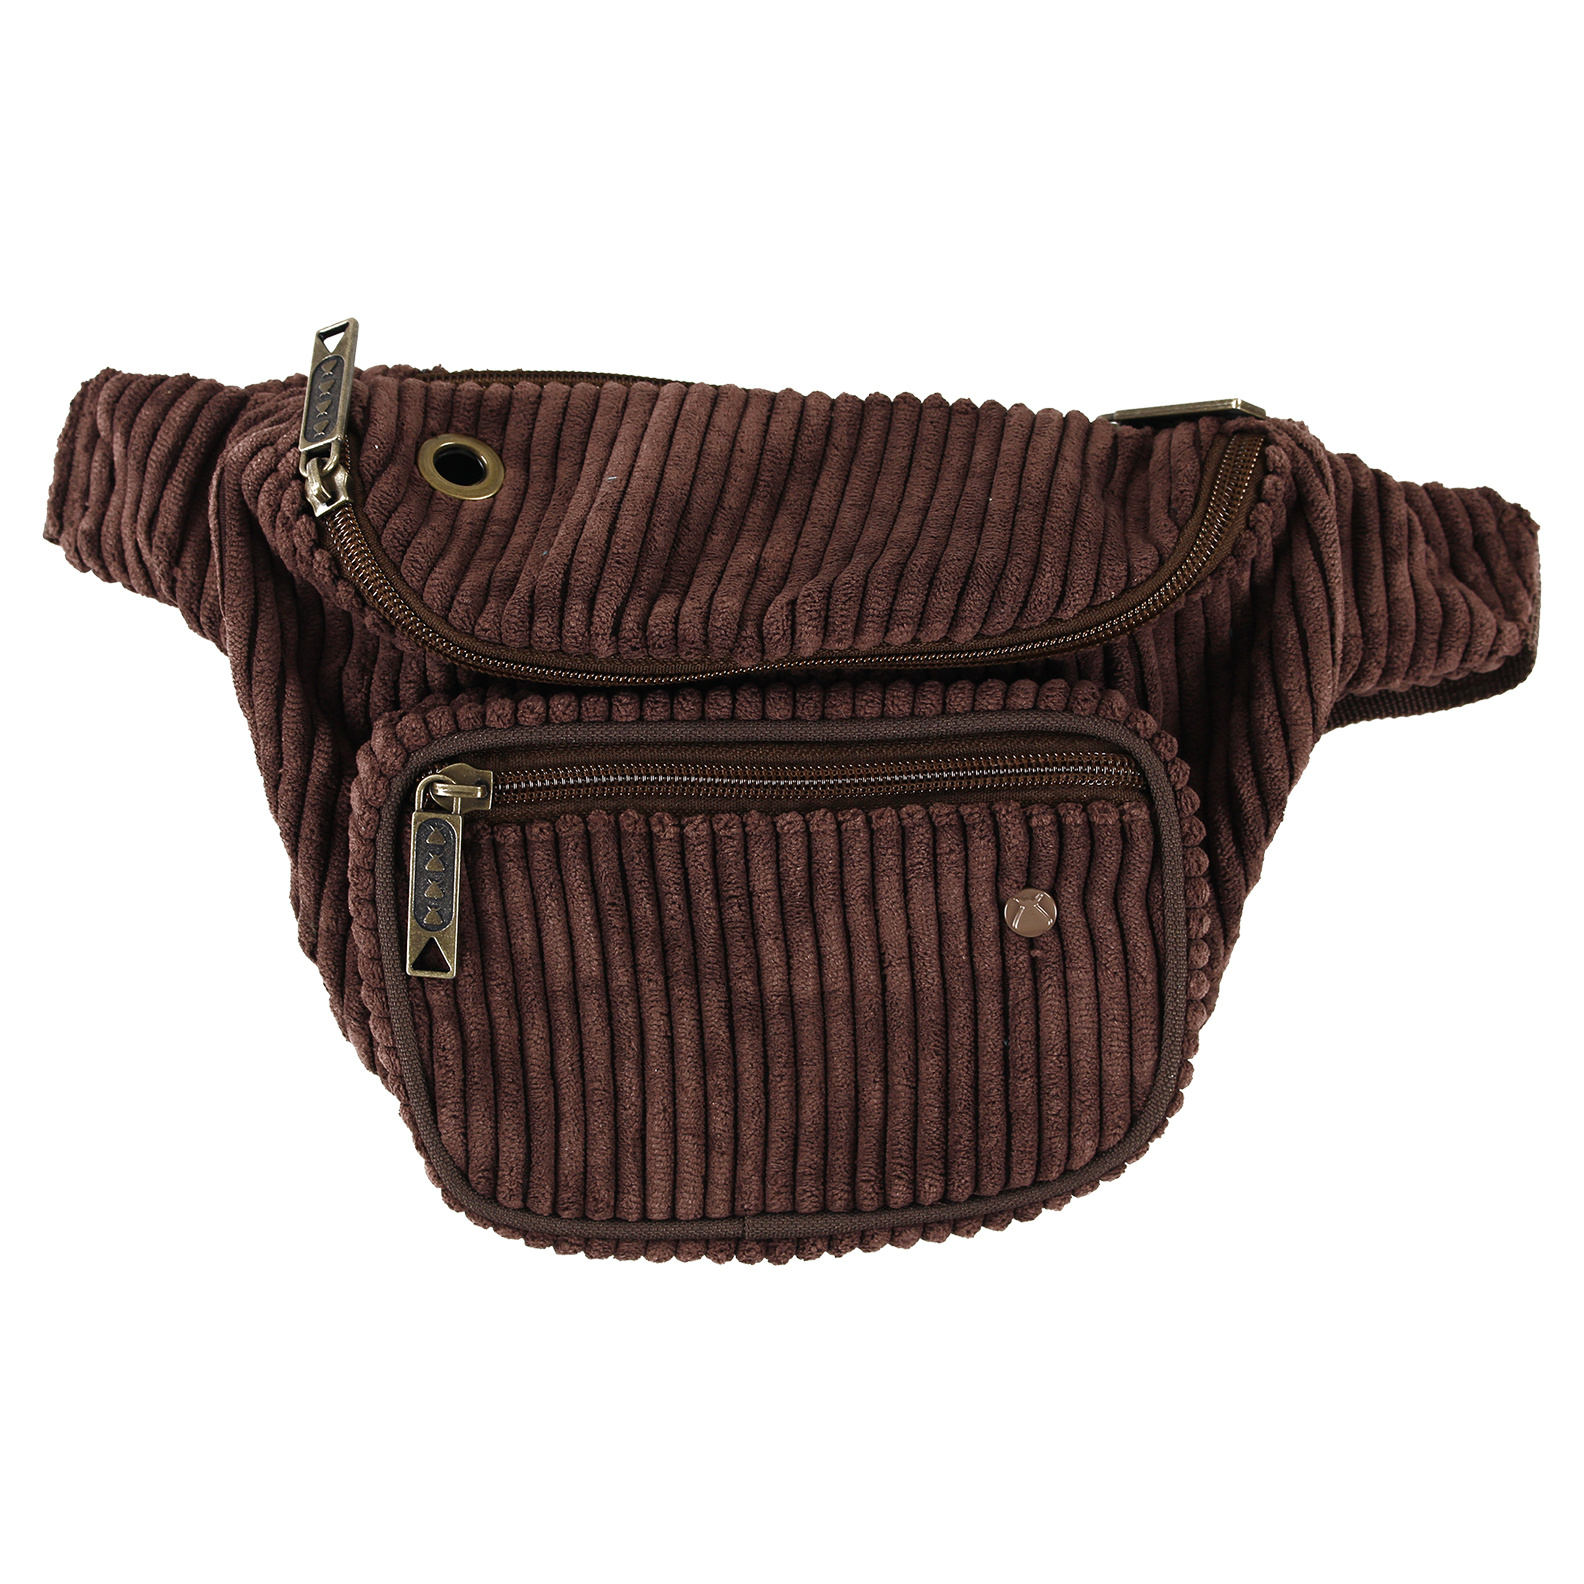 Eastern Skate Supply Bumbag Deluxe, Velma Brown